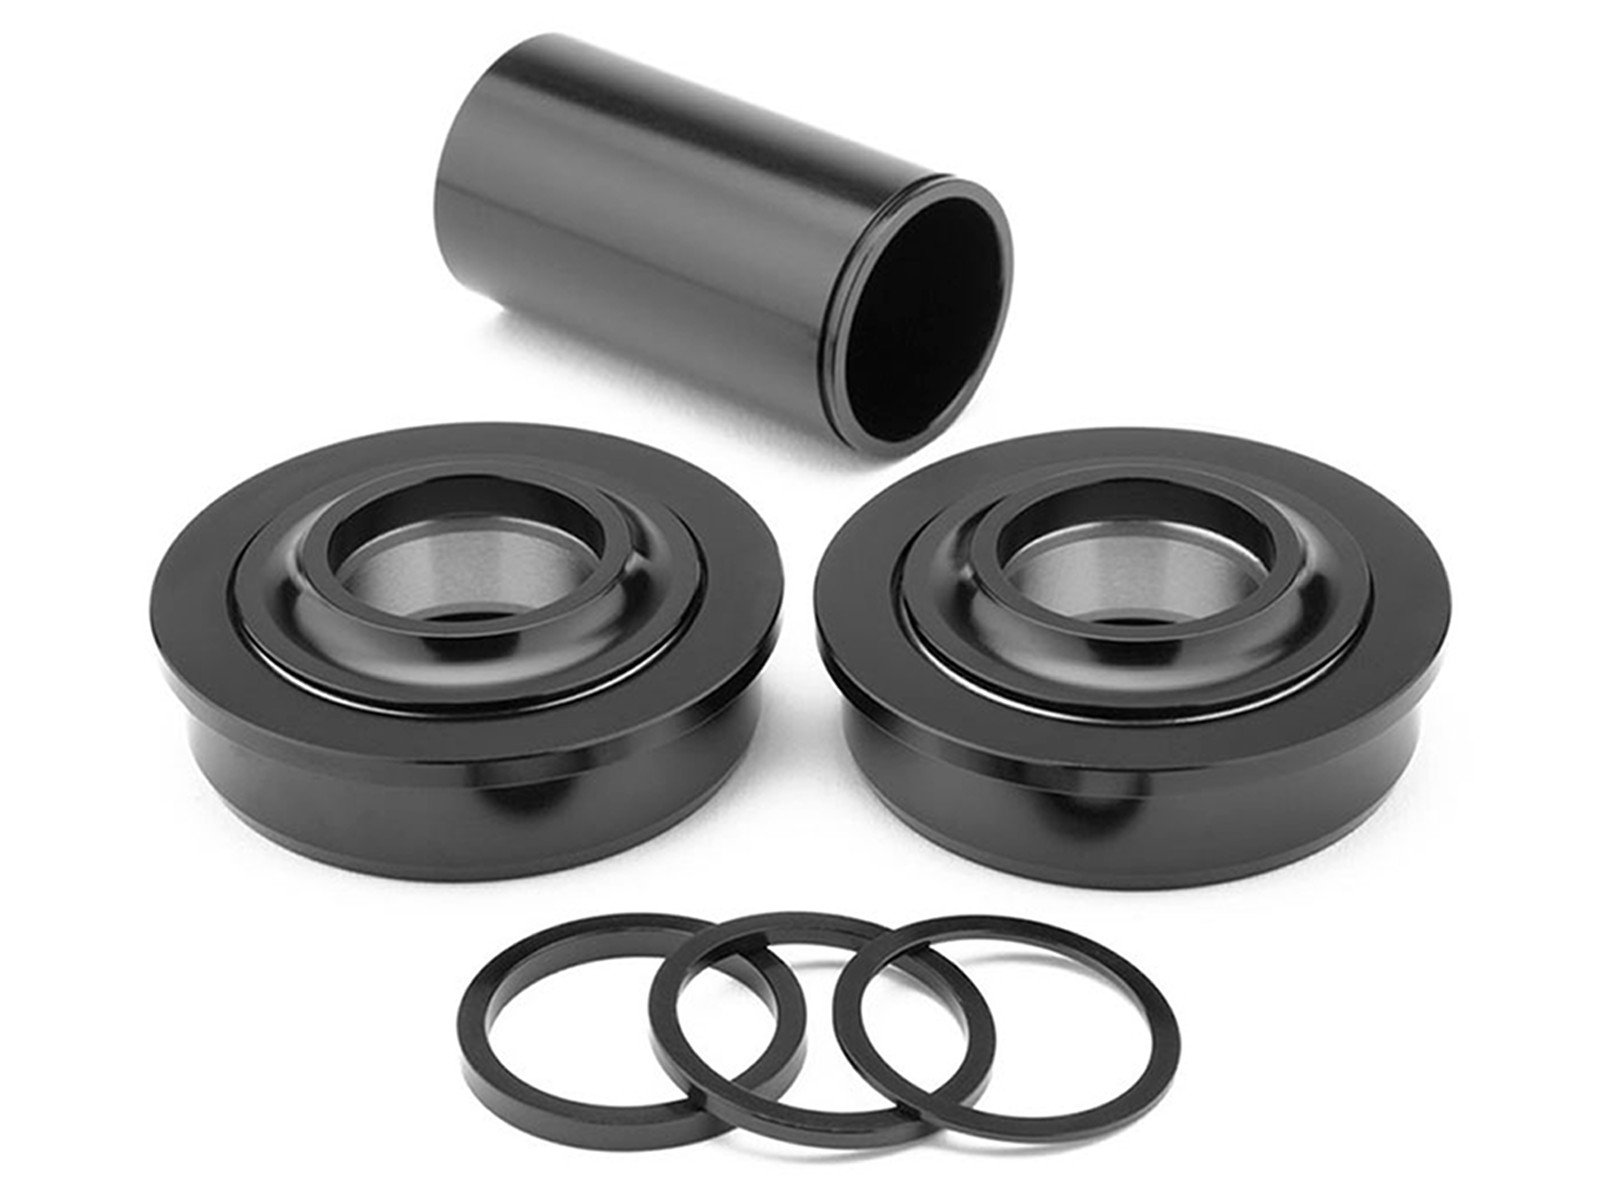 MISSION SPANISH BOTTOM BRACKET BLACK 22MM BMX CRANK BEARINGS